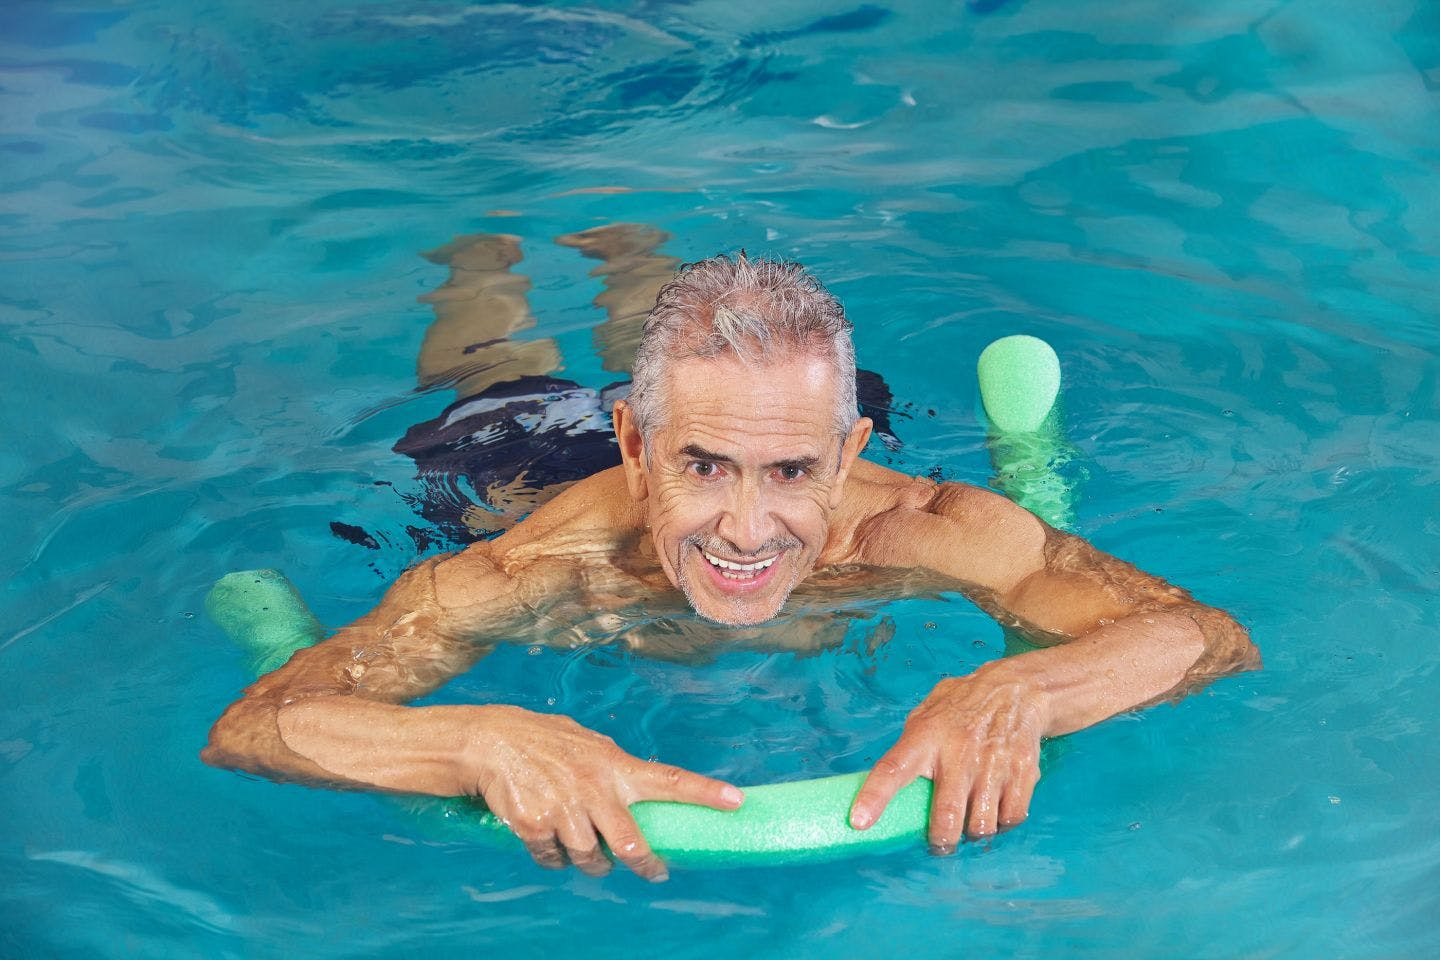 Capitol Physical Therapy | Aqiatoc Therapy